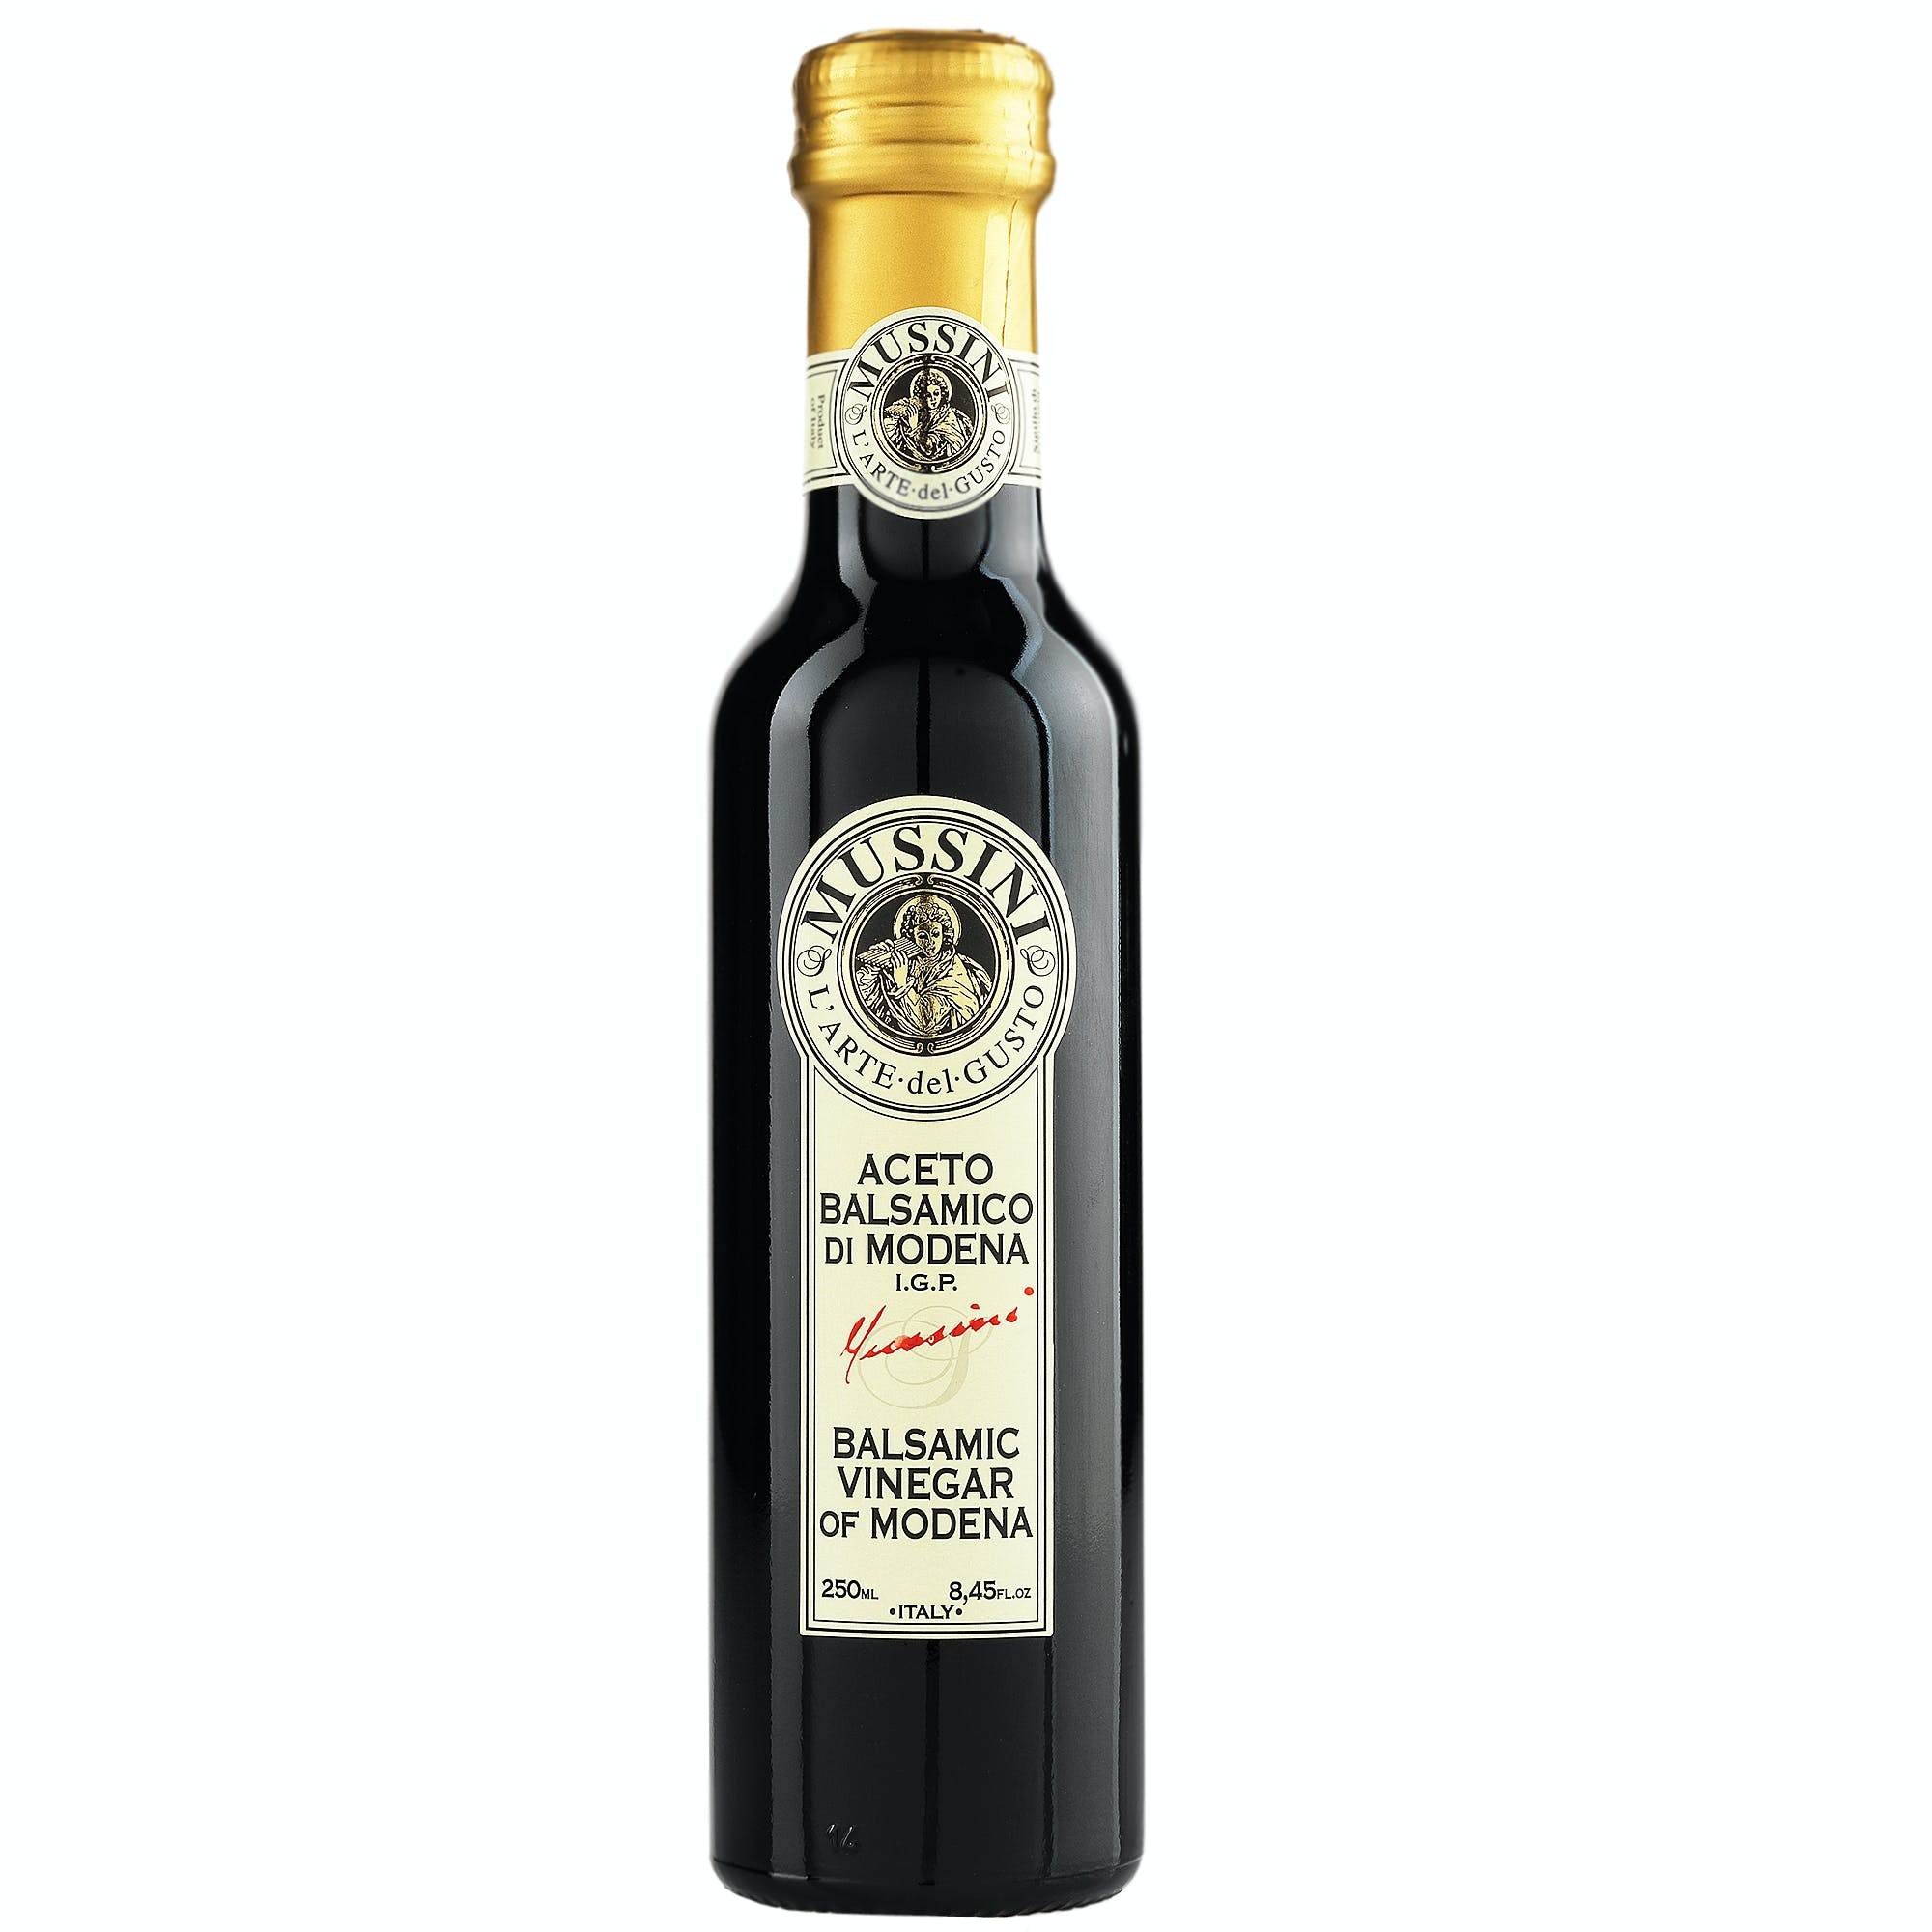 Classic 2 Year Balsamic Vinegar Balsamic Vinegar sold by M5 Corporation